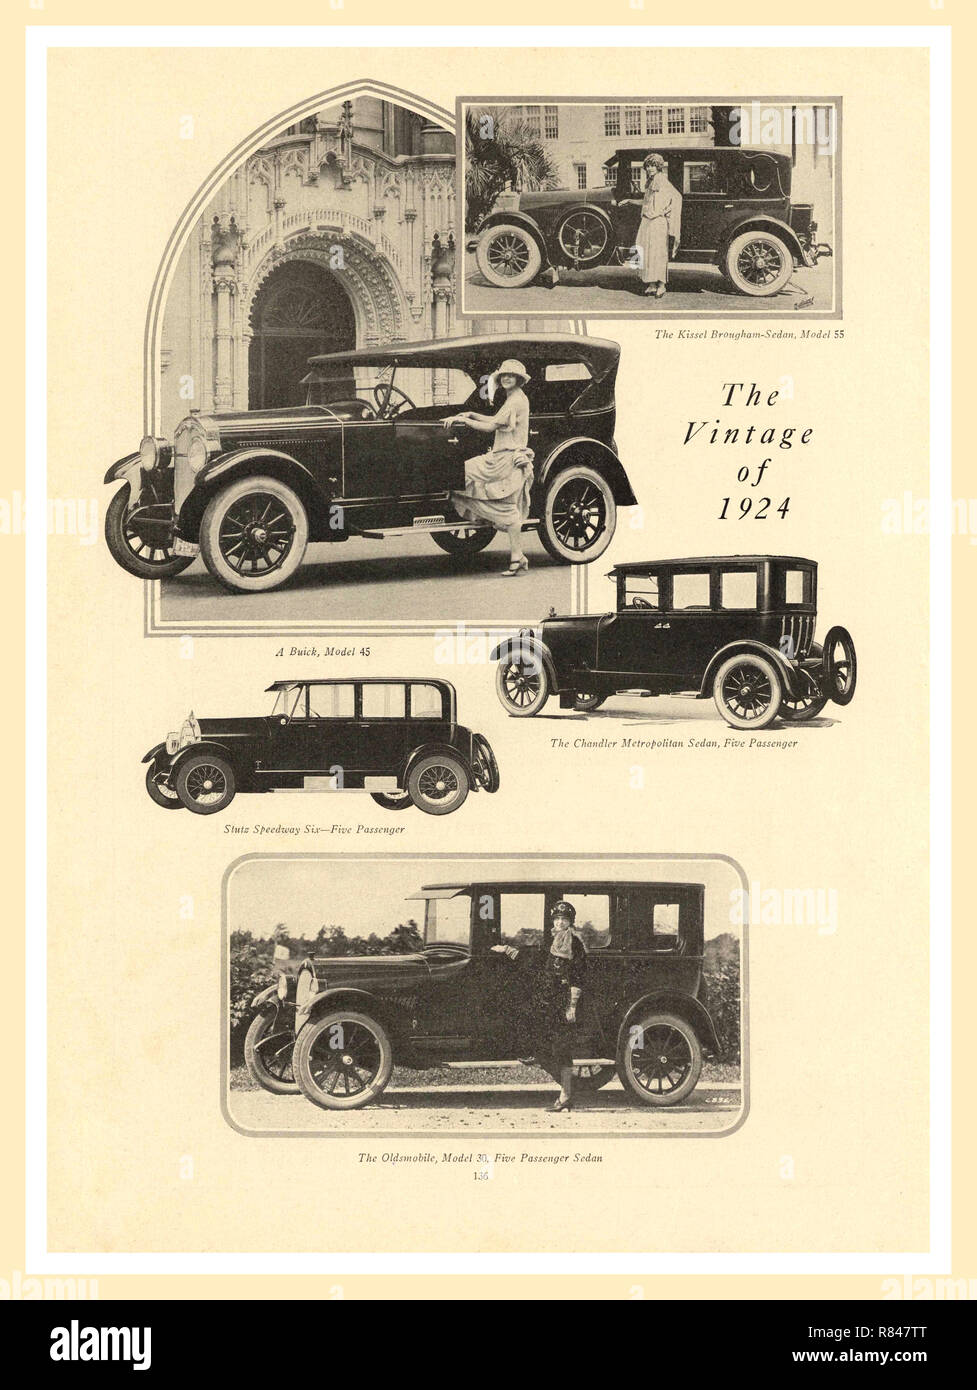 1924 vintage press advertisement for a selection of five of the best American Automobiles for sale The Kissel Brougham Sedan Model 55/ Buick Model 45/The Chandler Metropolitan Sedan 5 Passenger/Stutz Speedway 6 5 passenger/The Oldsmobile Model 30 5 Passenger Sedan - Stock Image